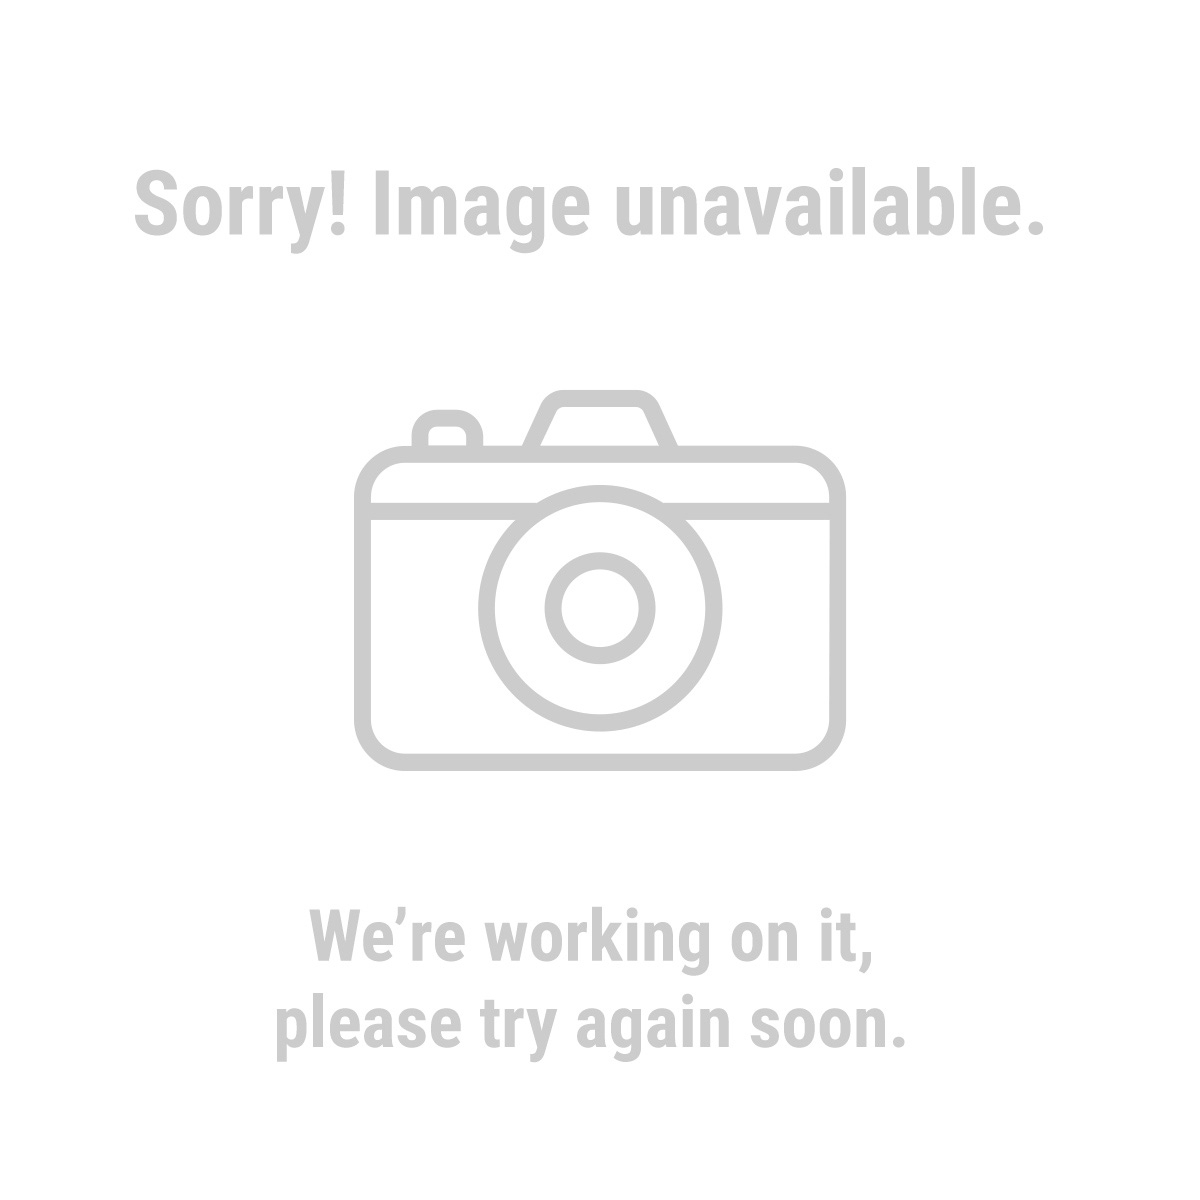 Haul-Master 47309 12 Piece Adjustable Stretch Cord Set